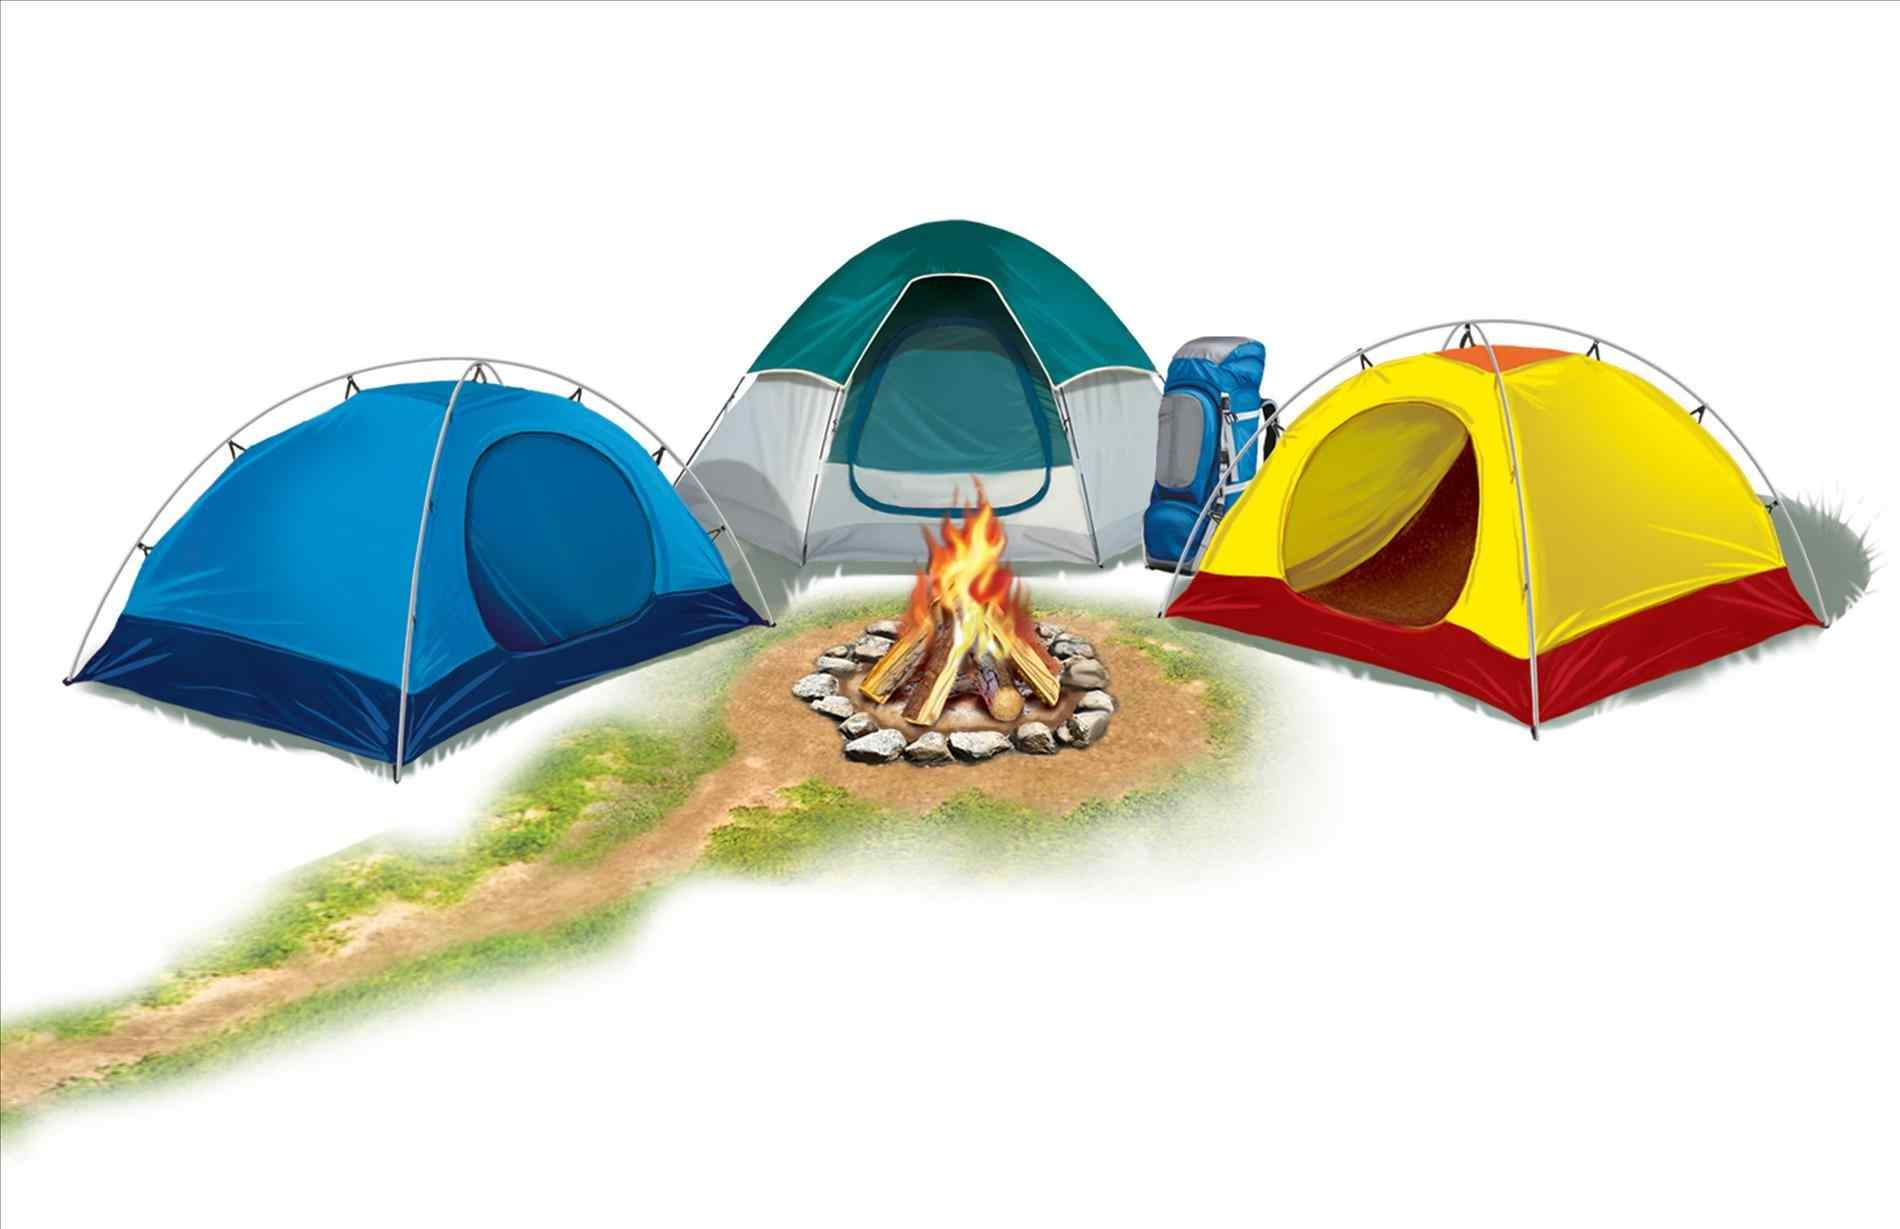 1900x1229 Rhideaswebsite Free Tent Pictures Ixrhixcom Free Camping Tents